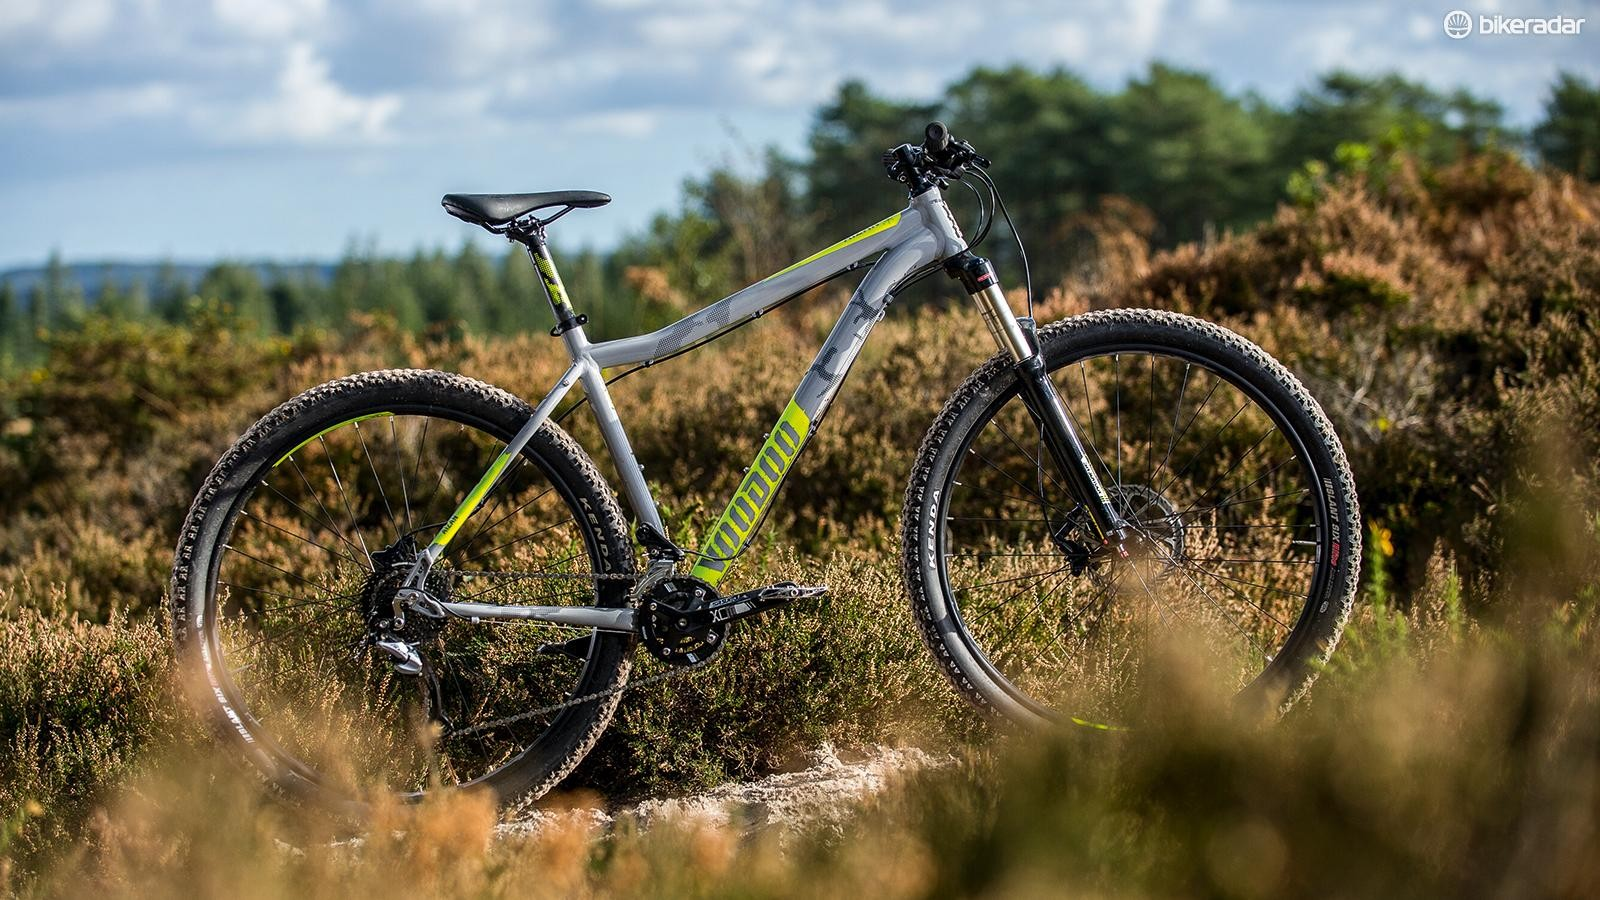 The 2018 Aizan frame is all-new, with stretched reach, a 68-degree head angle and dropper post compatibility. A double rather than triple crankset makes for a lighter, more efficient transmission too